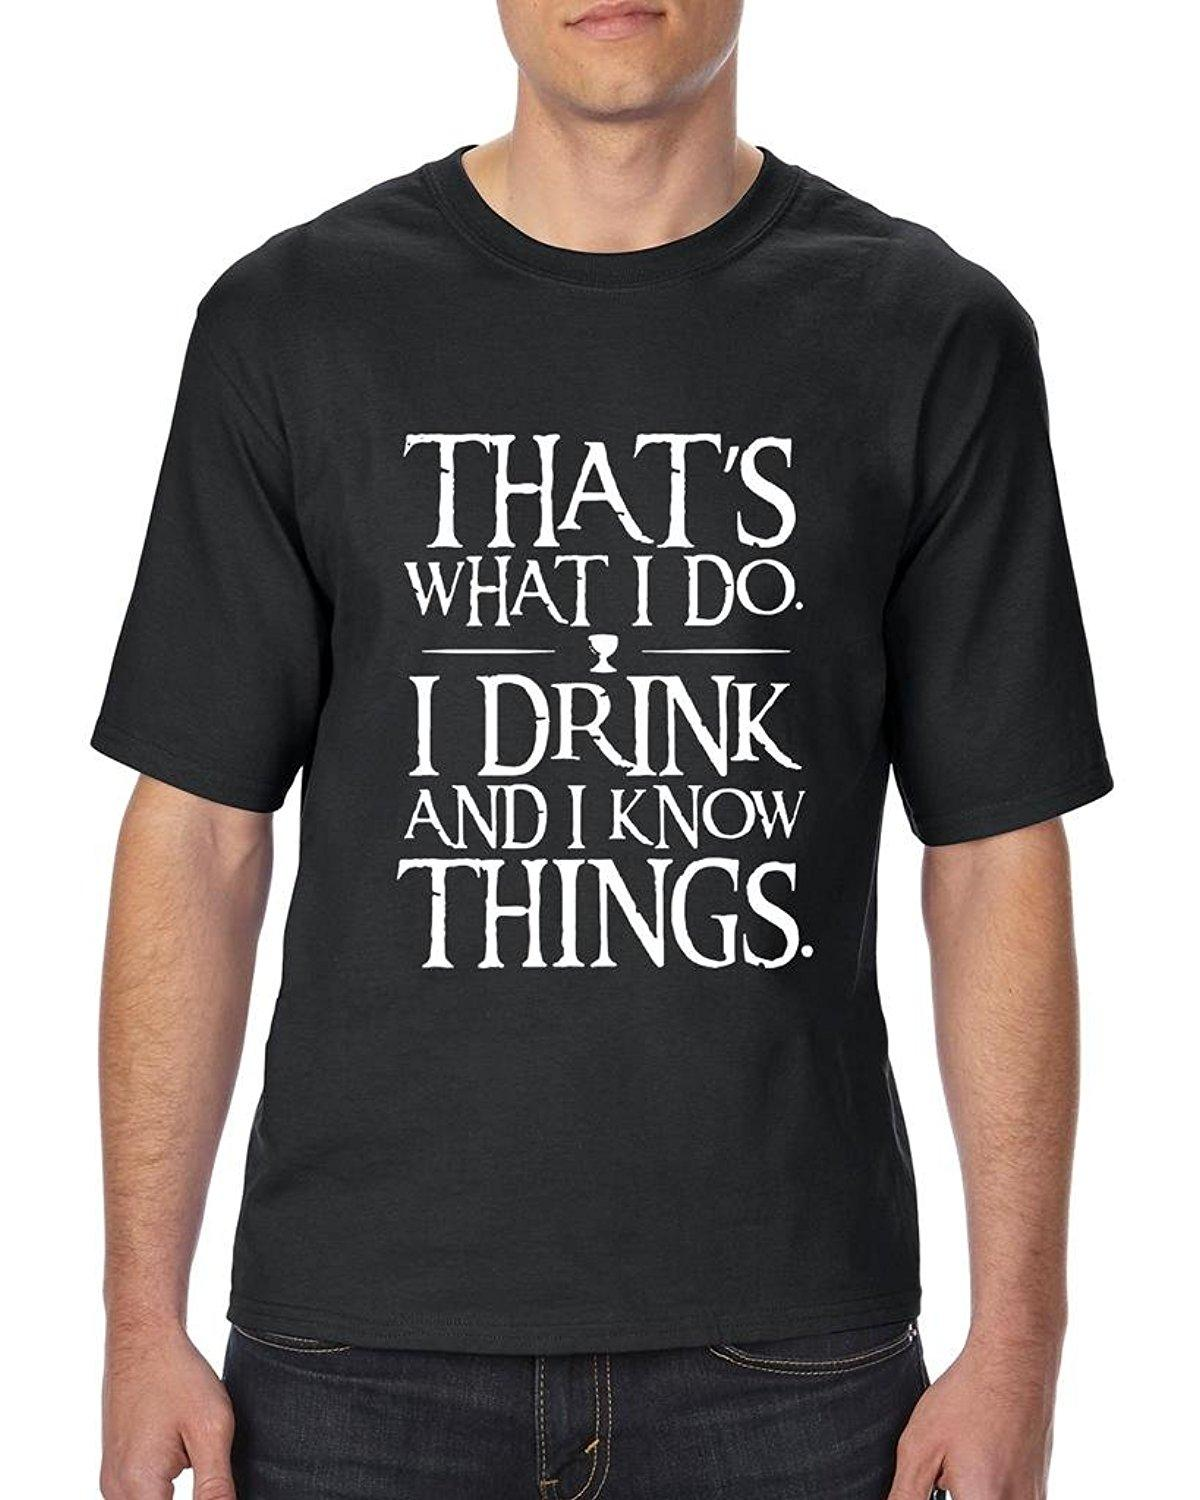 Wear Adult Motorcycle Tee Shirts That`s <font><b>What</b></font> I Do. I Drink and I Know Things Unisex T-Shirt Tall SizesComfort Soft <font><b>Superhero</b></font>